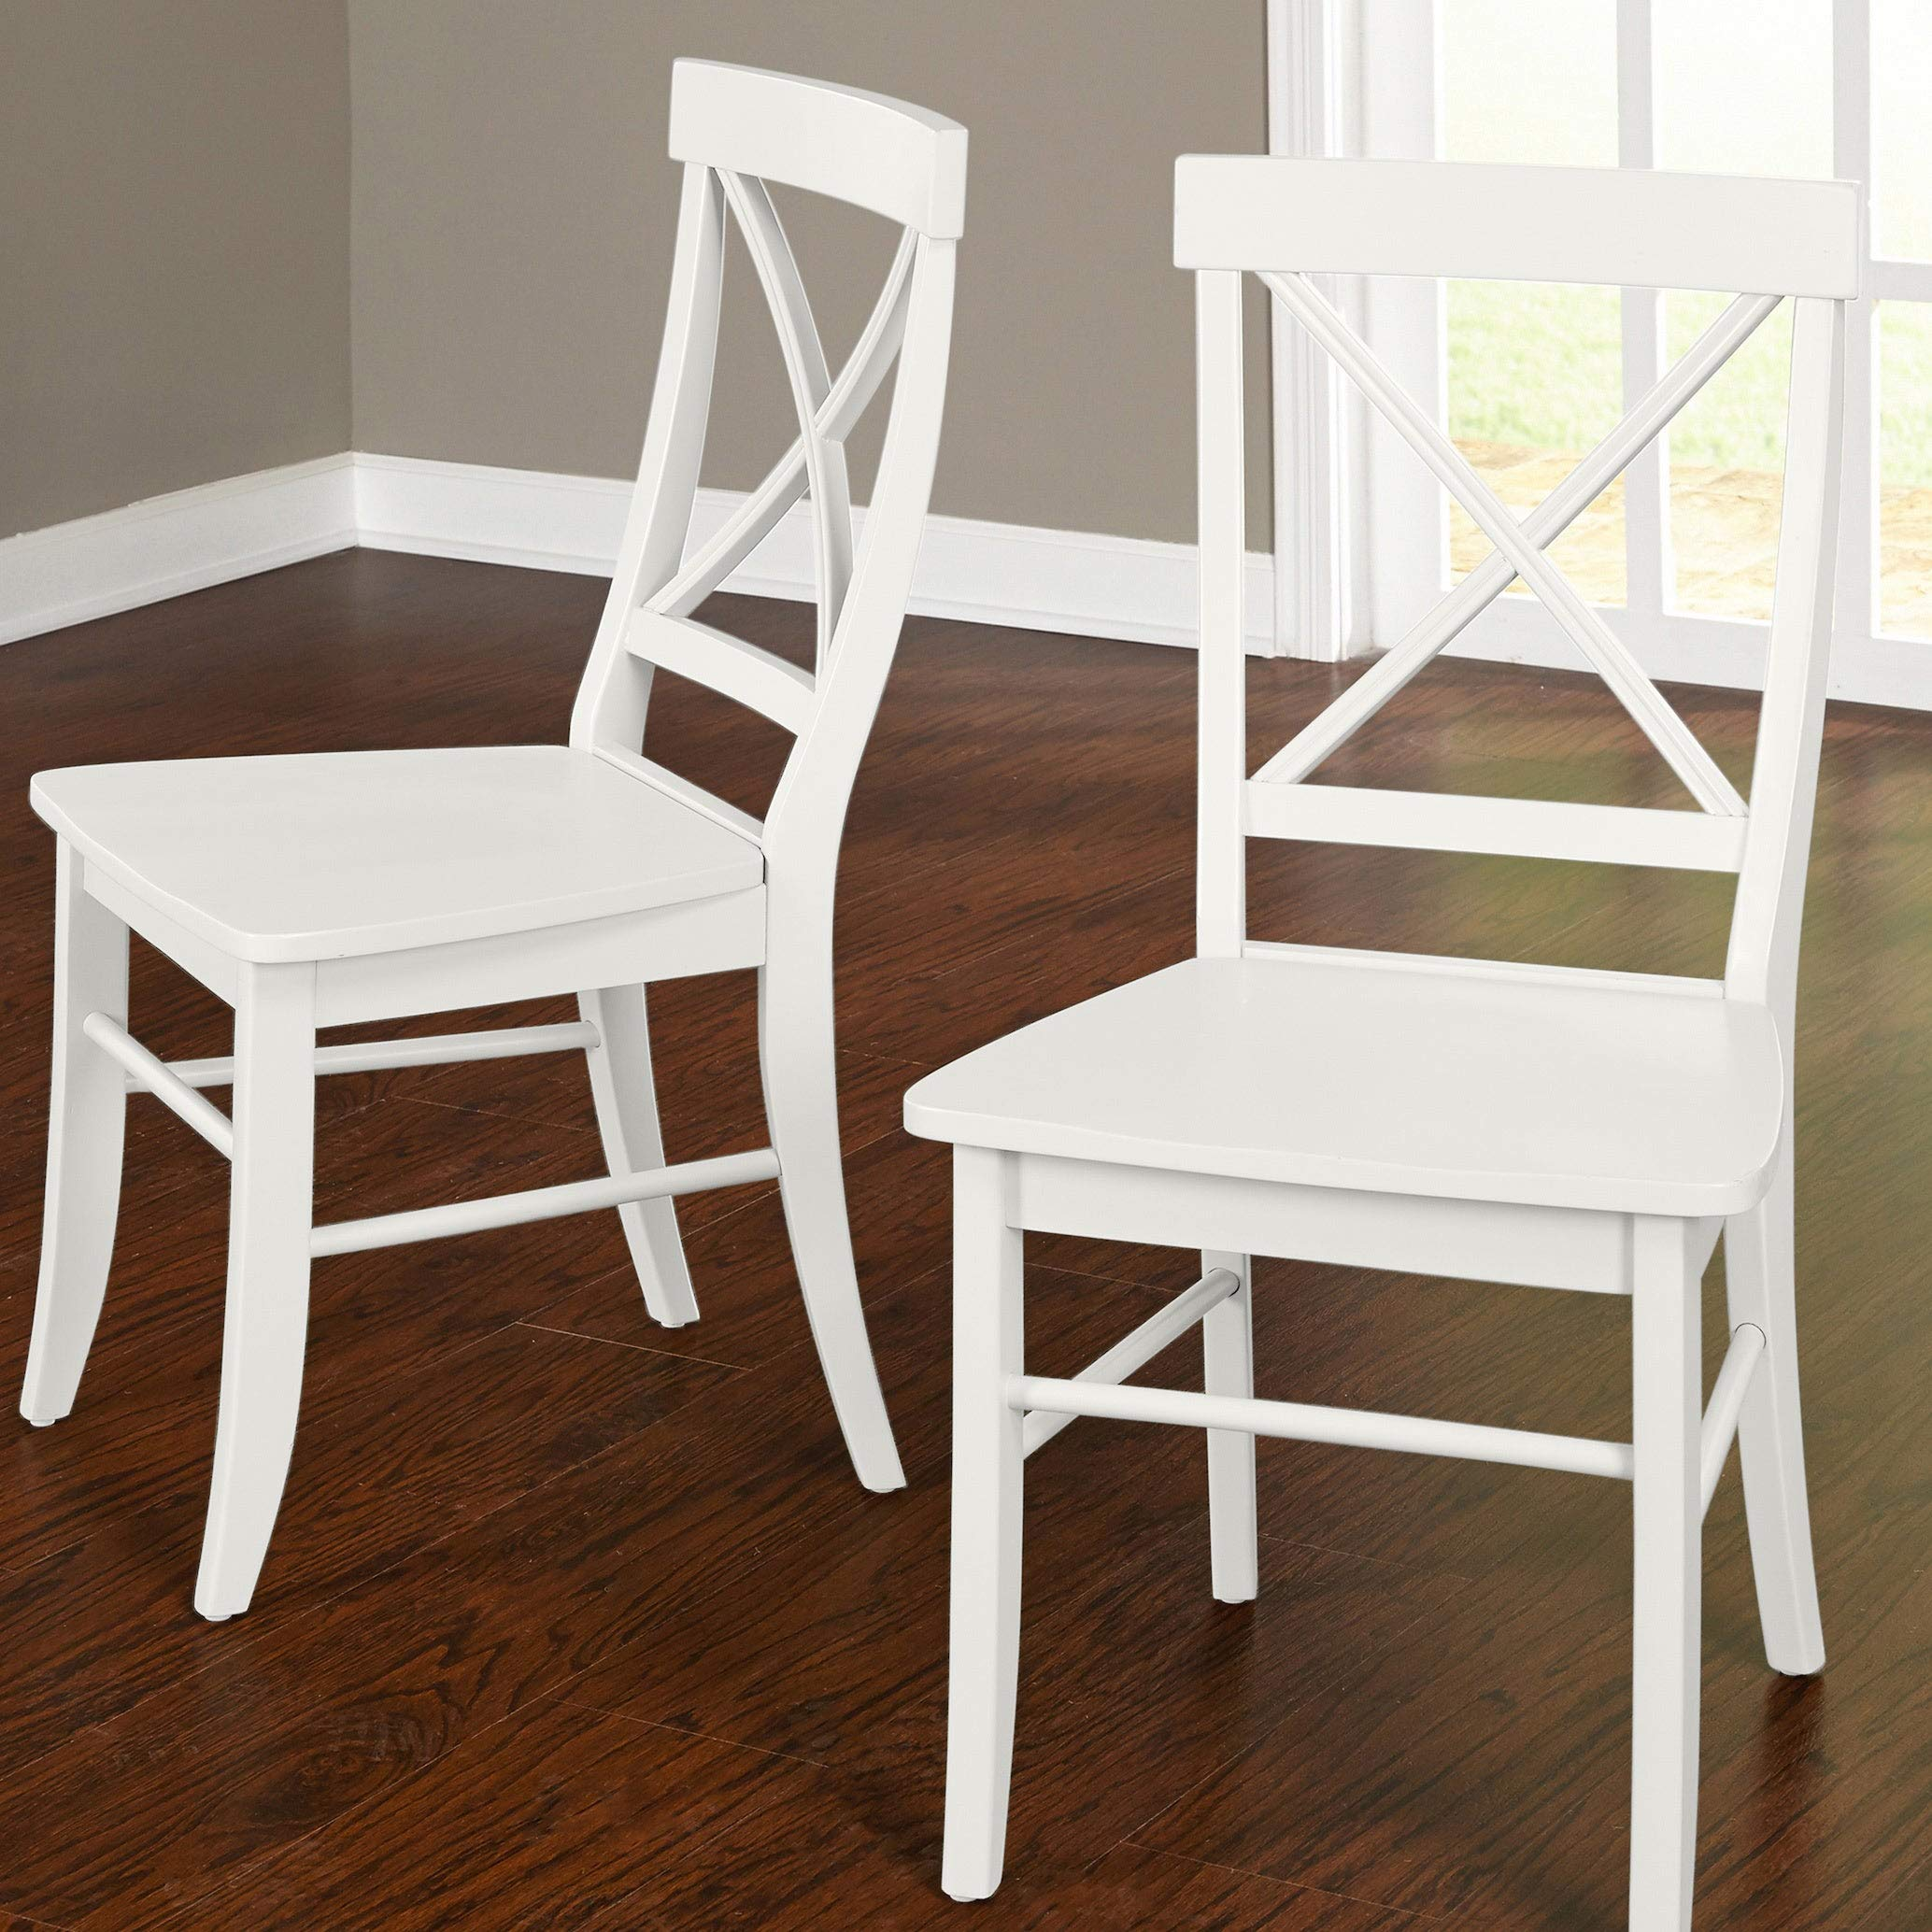 Target Marketing Systems 75118WHT PR Albury Set of 2 Dining Chairs, White by Target Marketing Systems